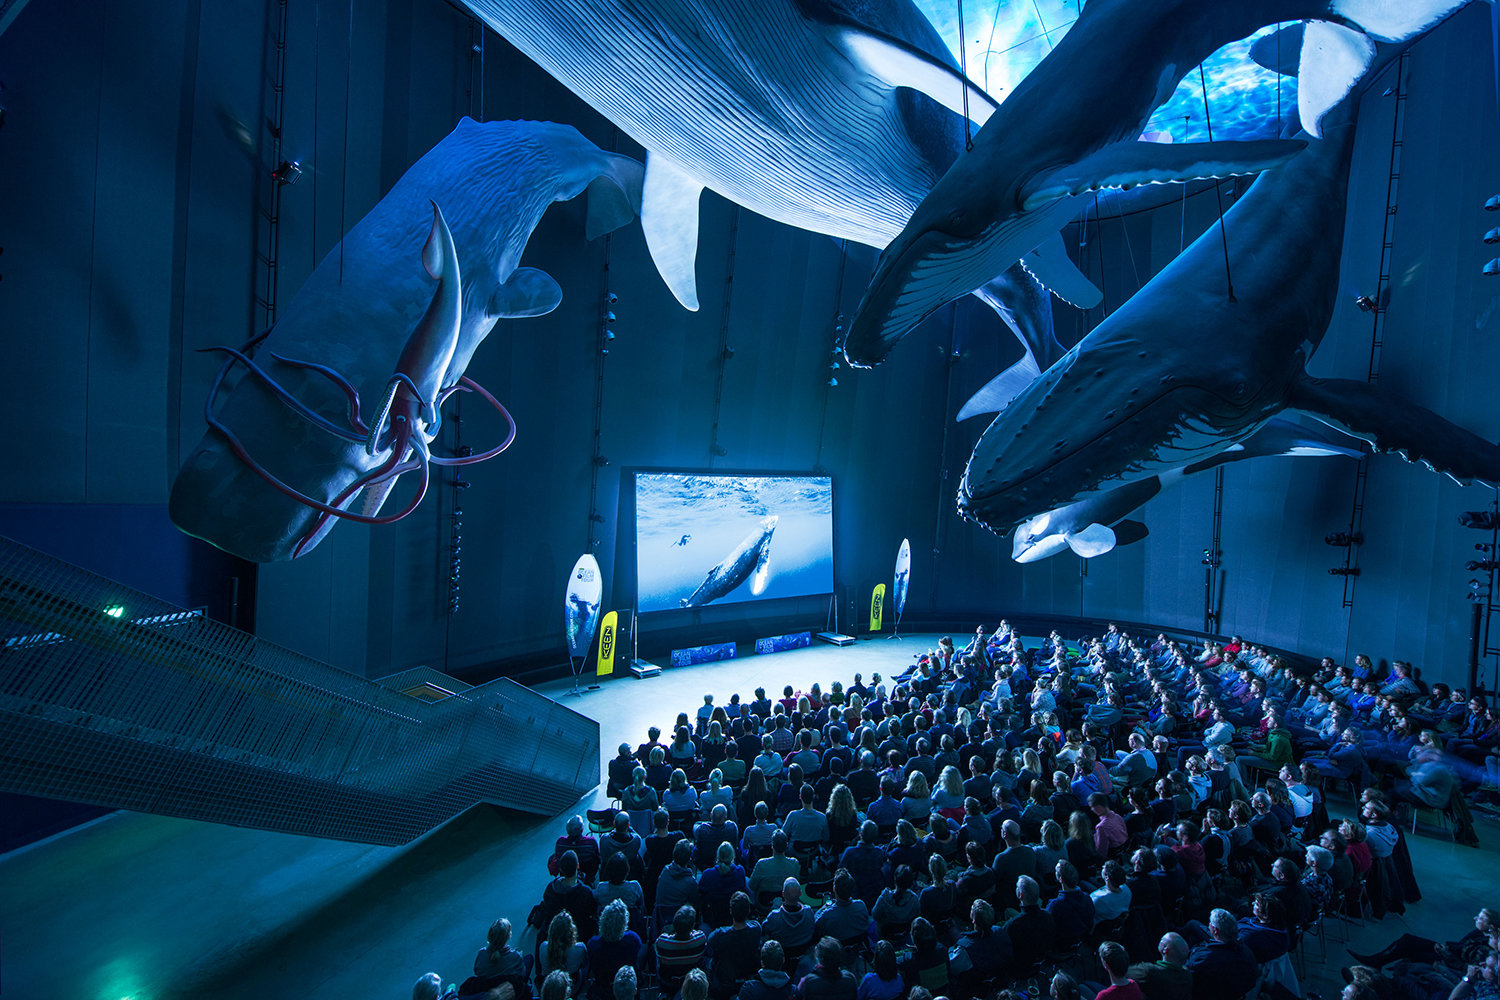 FOTO: International Ocean Film Tour